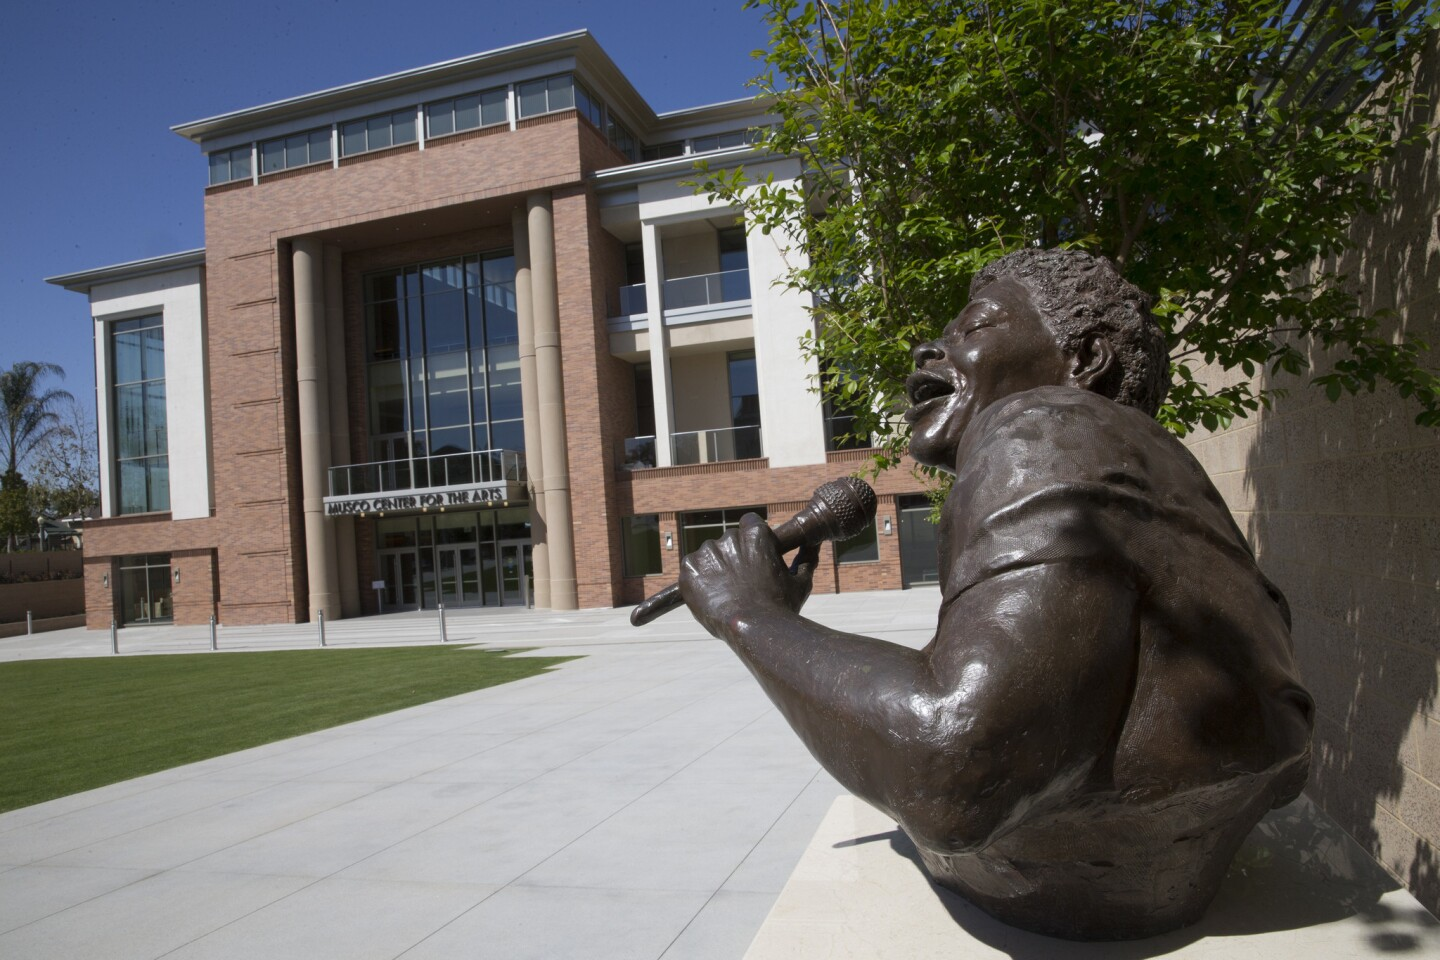 The Marybelle and Sebastian P. Musco Center for the Arts at Chapman University will serve primarily as a performing venue for the school's students, though it also will host visiting performers and ensembles. A bust of Ella Fitzgerald stands in the courtyard. A bust of Ella Fitzgerald sits outside the front of the Musco Center for the Arts at Chapman University in Orange, Calif.